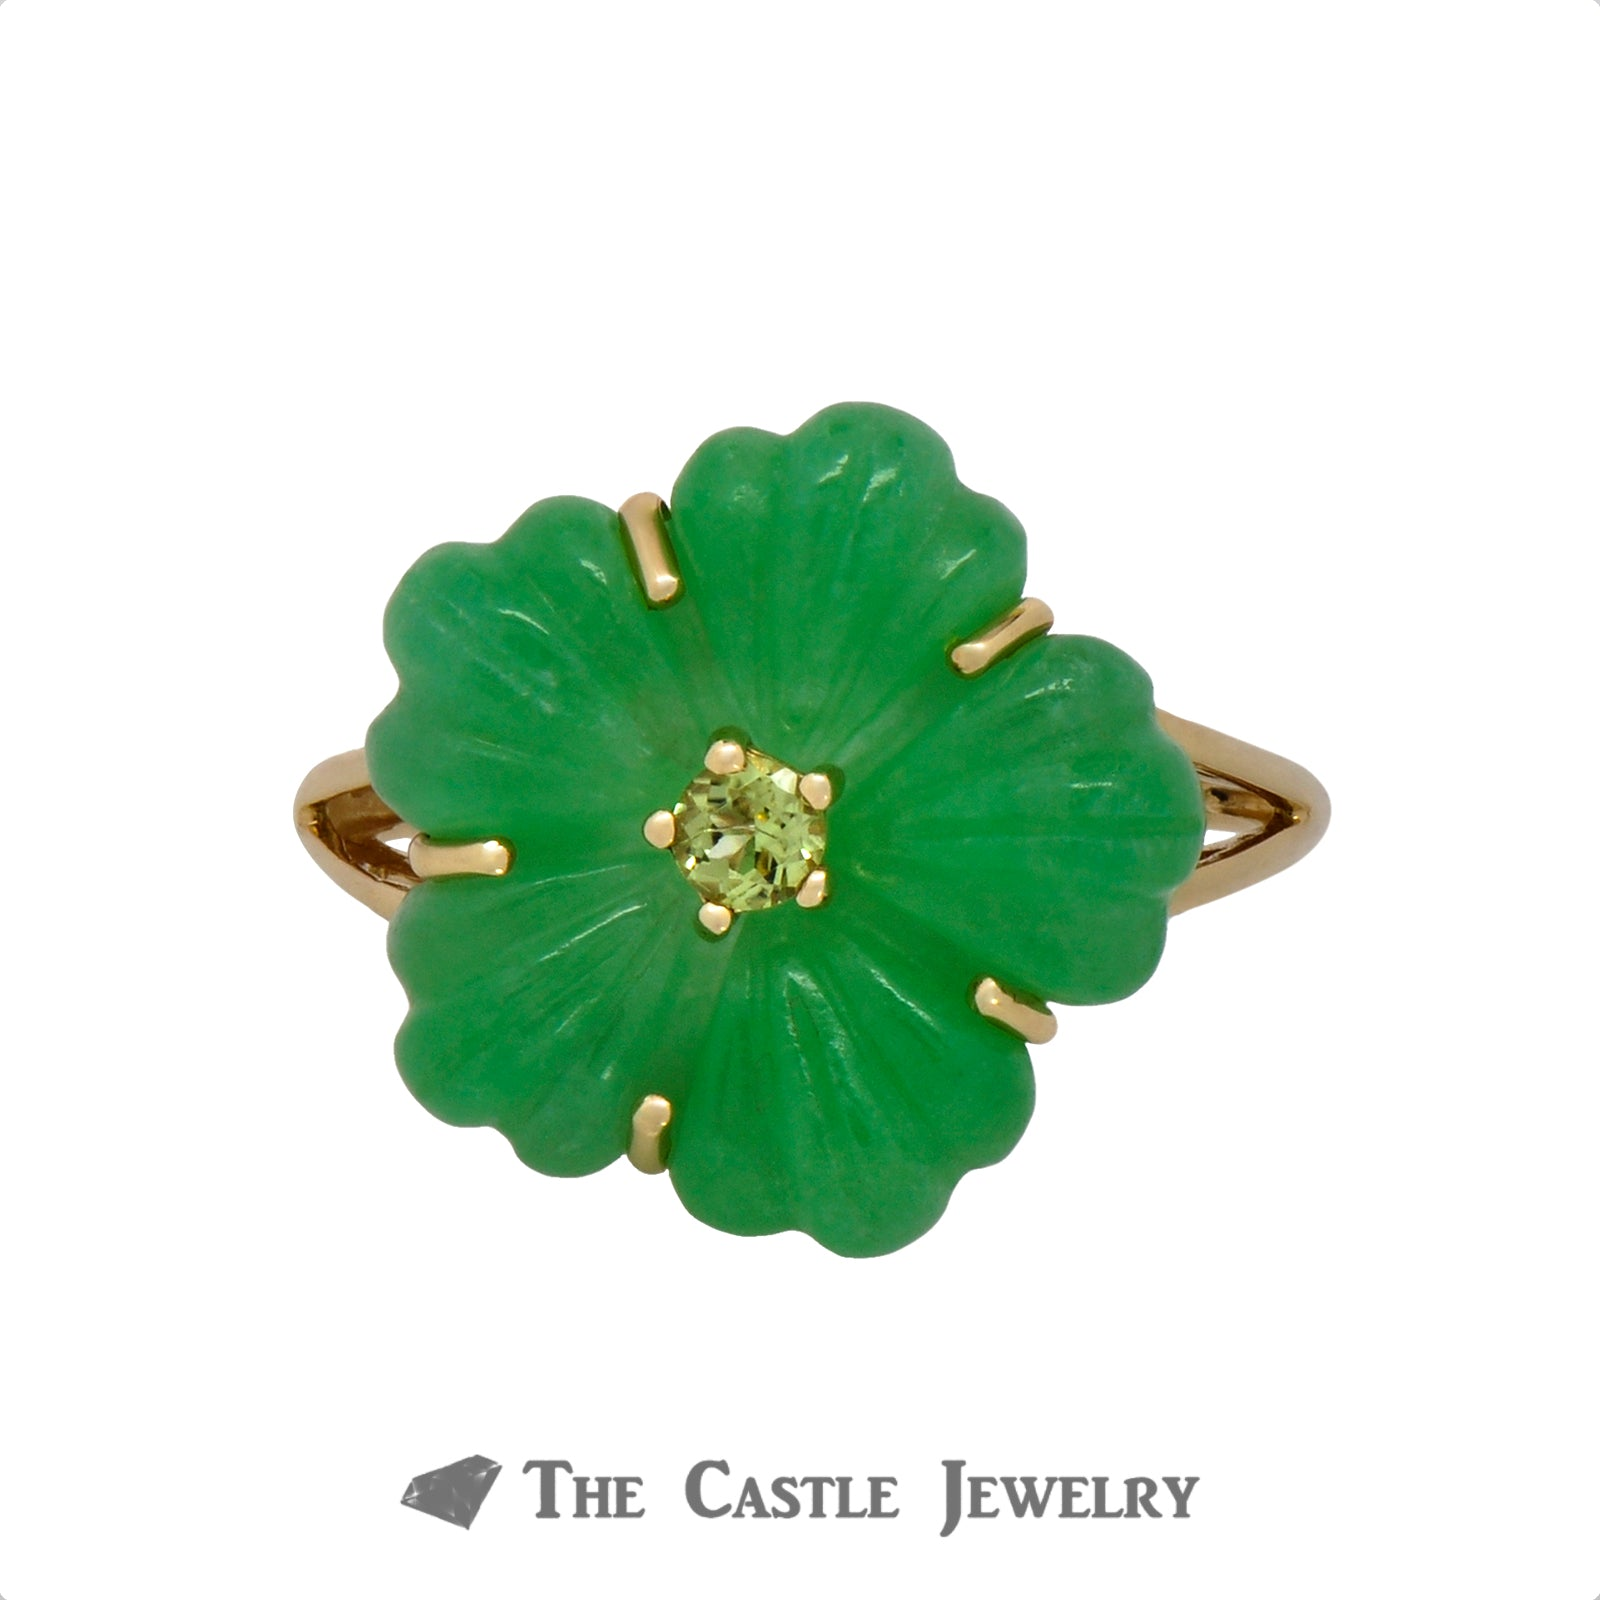 Unique Jade Flower Ring with Peridot Center in 14K Yellow Gold